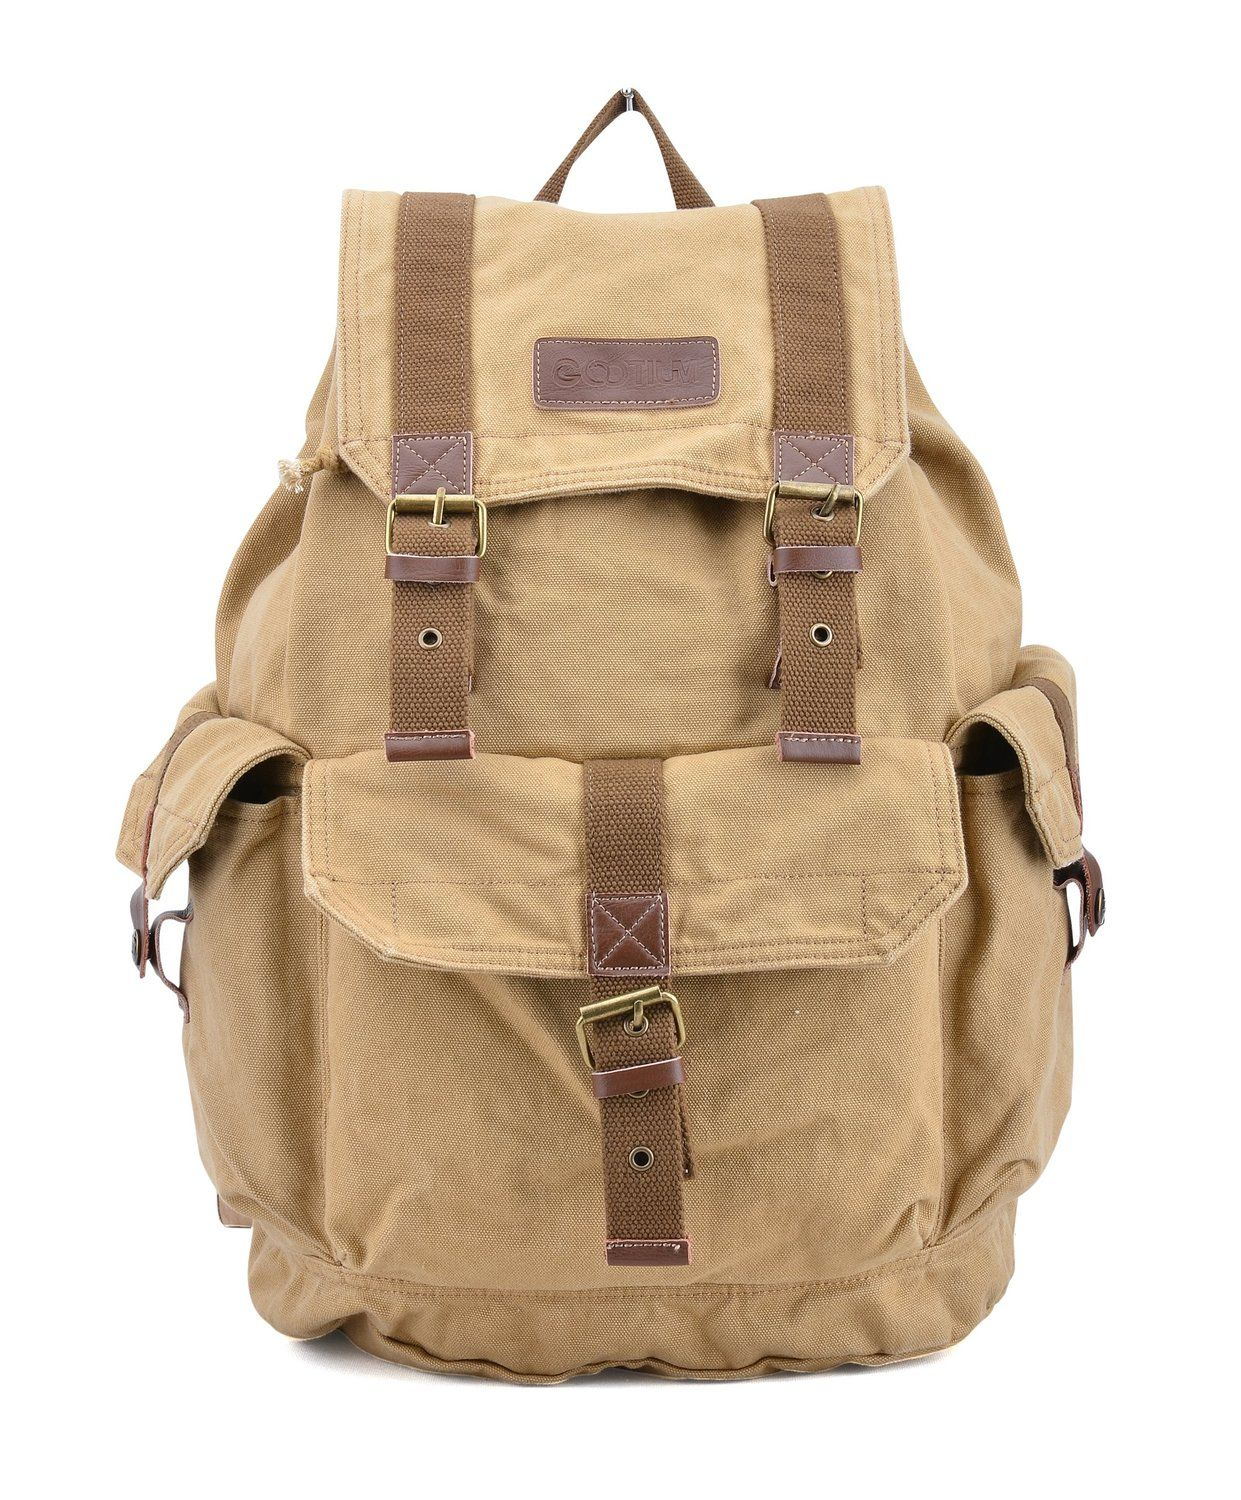 c1ded118c Gootium 21101 Specially High Density Thick Canvas Backpack Rucksack >>> You  can get more